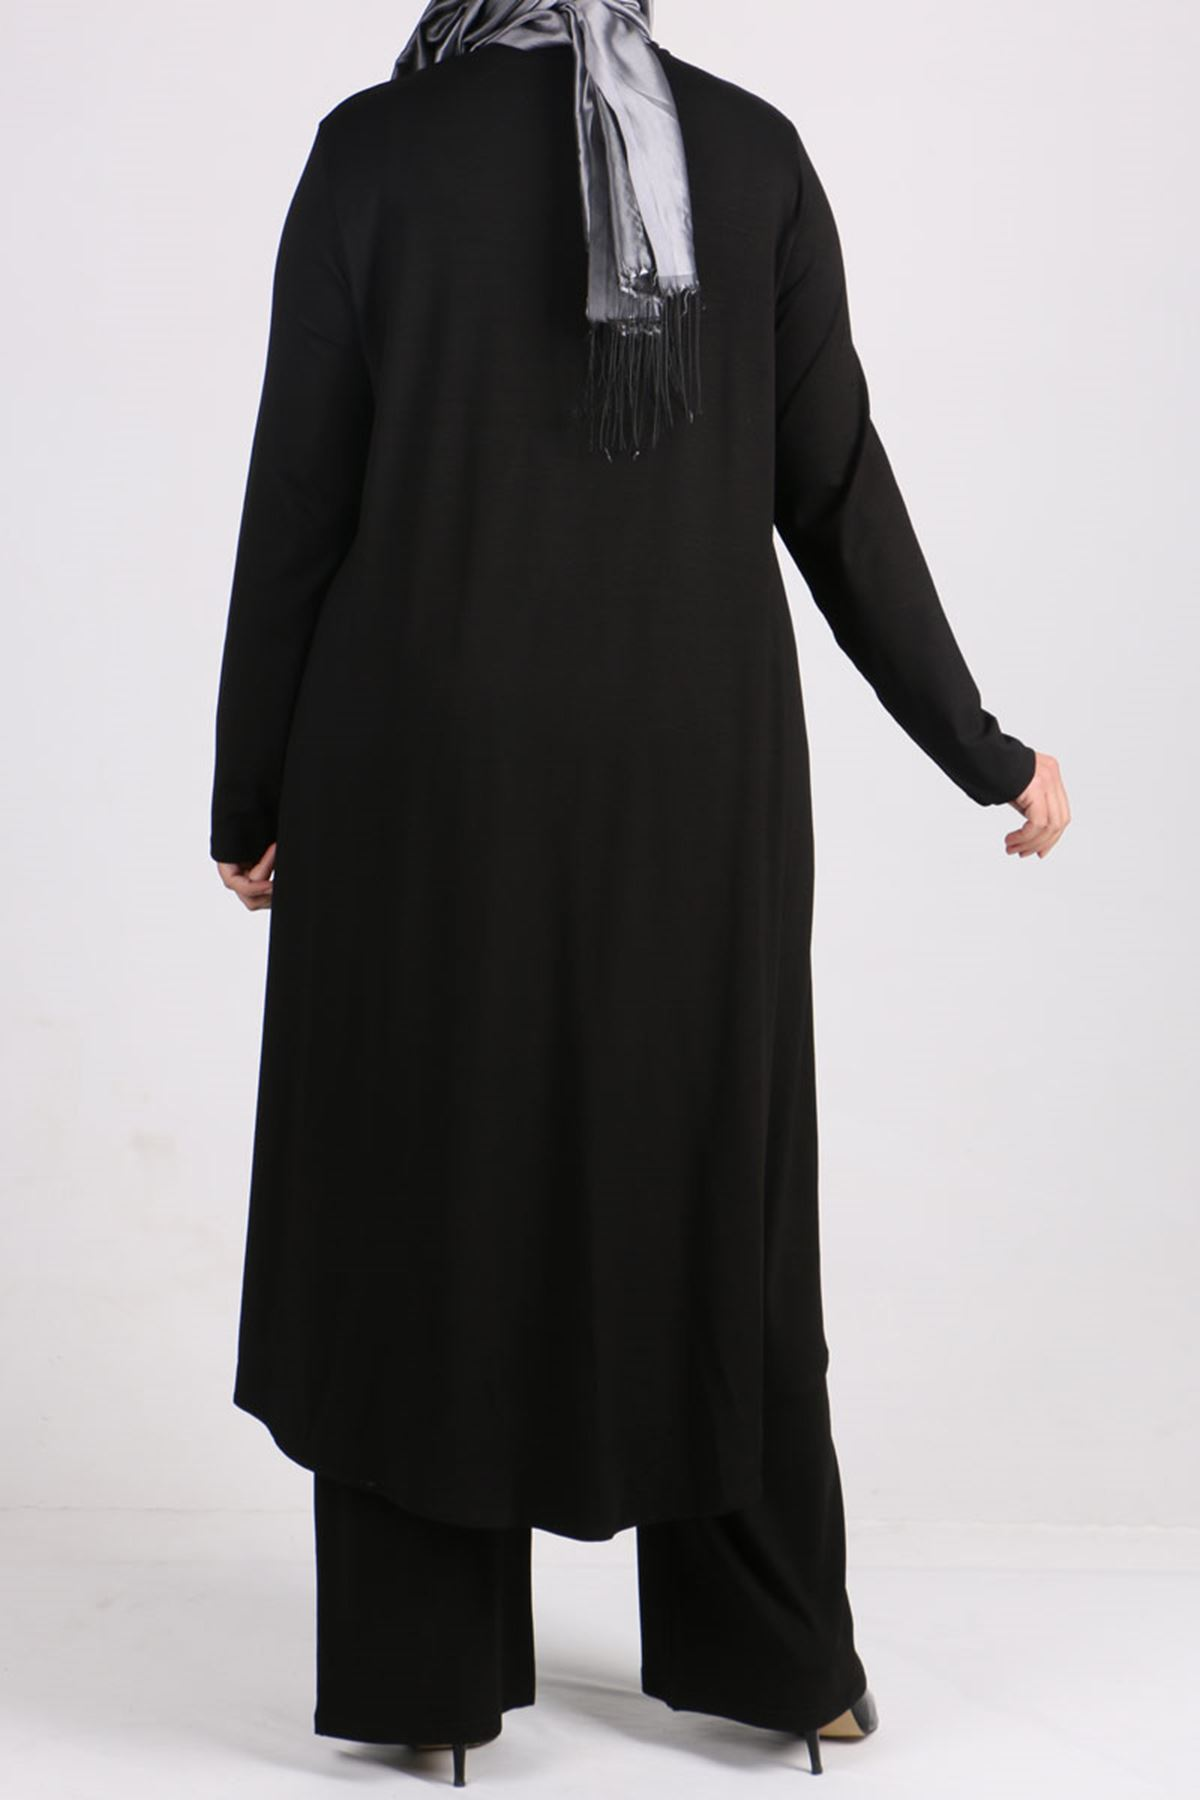 7598 Plus Size Two Piece Set with Tunic and Pants- Black